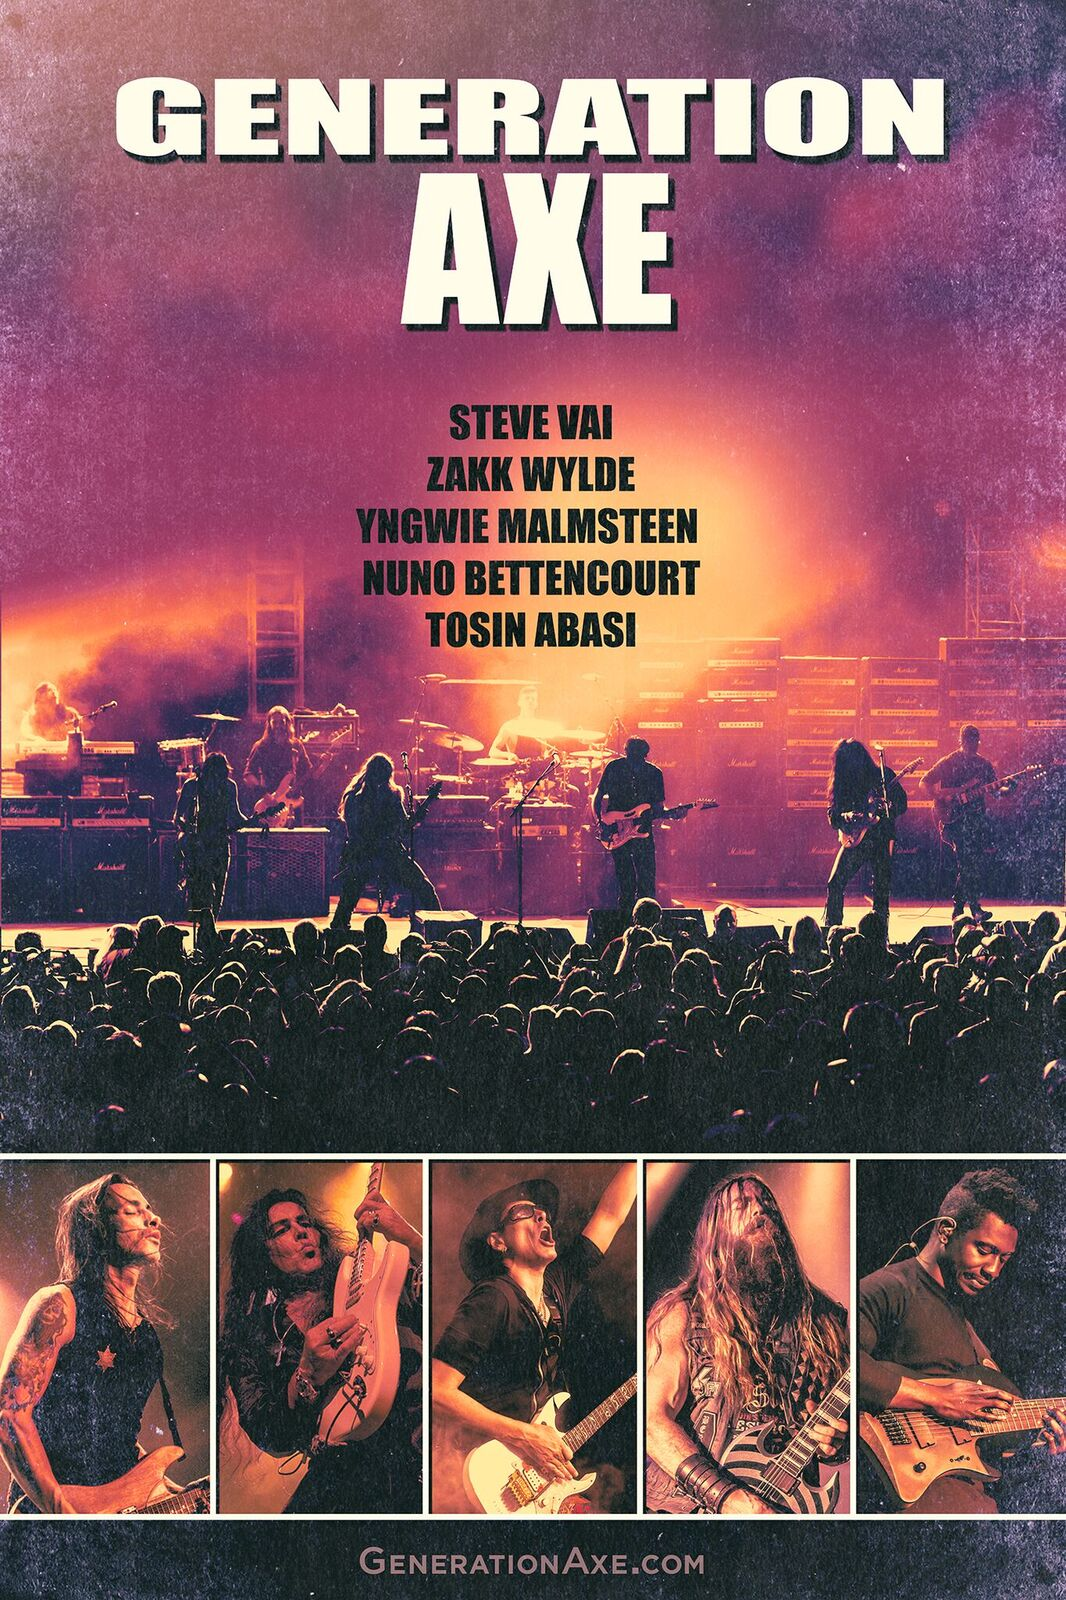 Generation Axe North American Tour Commences November 7 Backstage